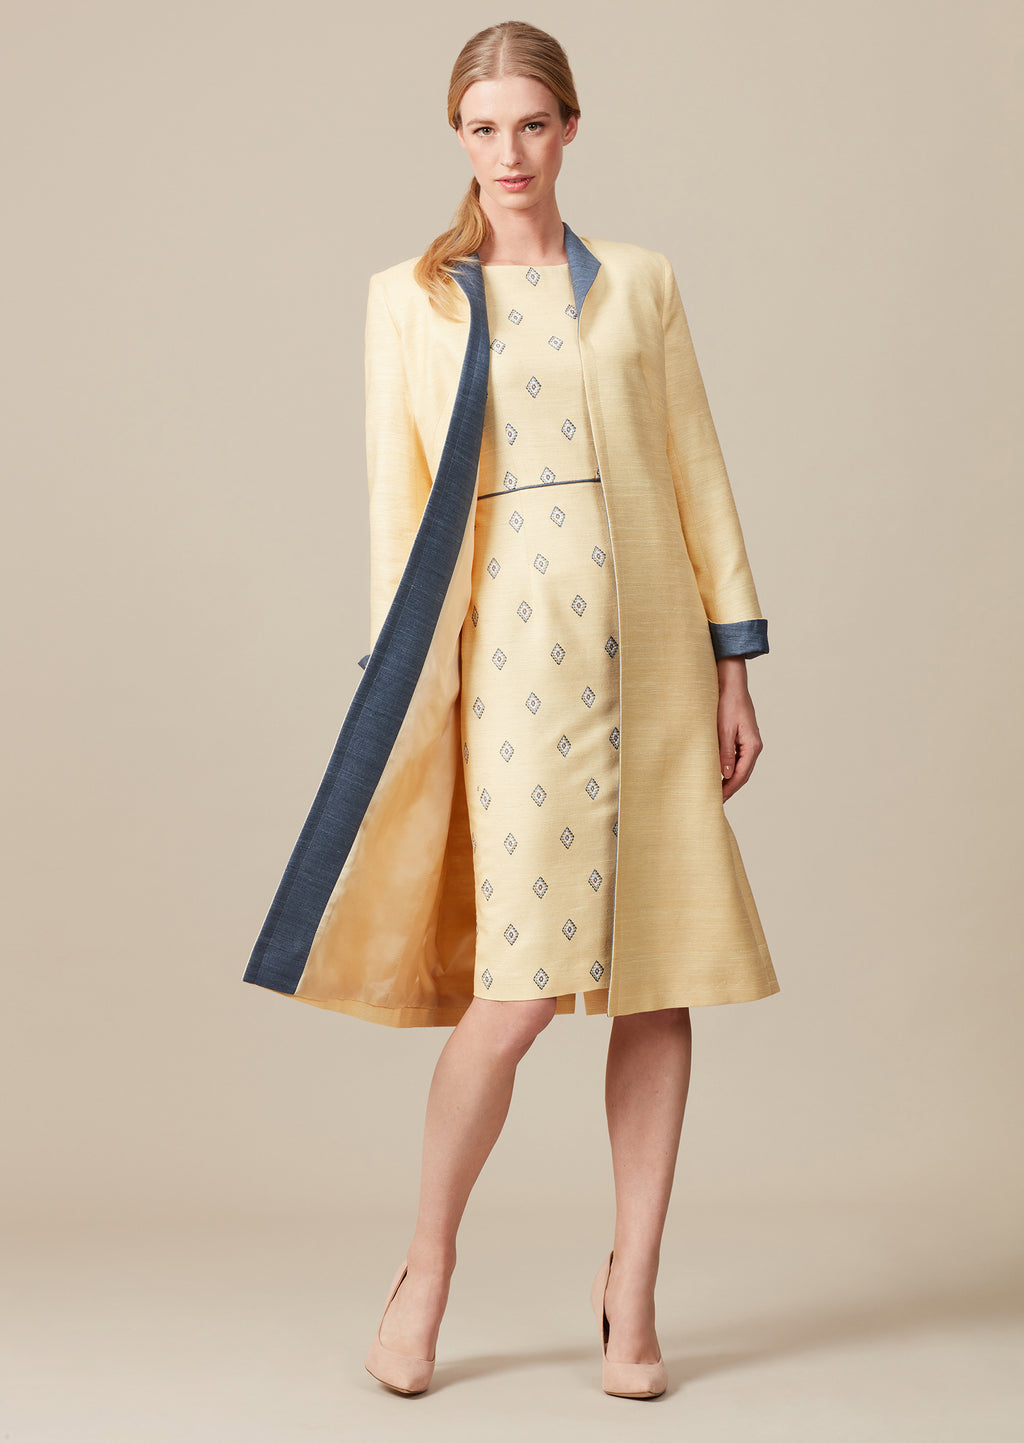 elegant mother of the bride outfit in yellow